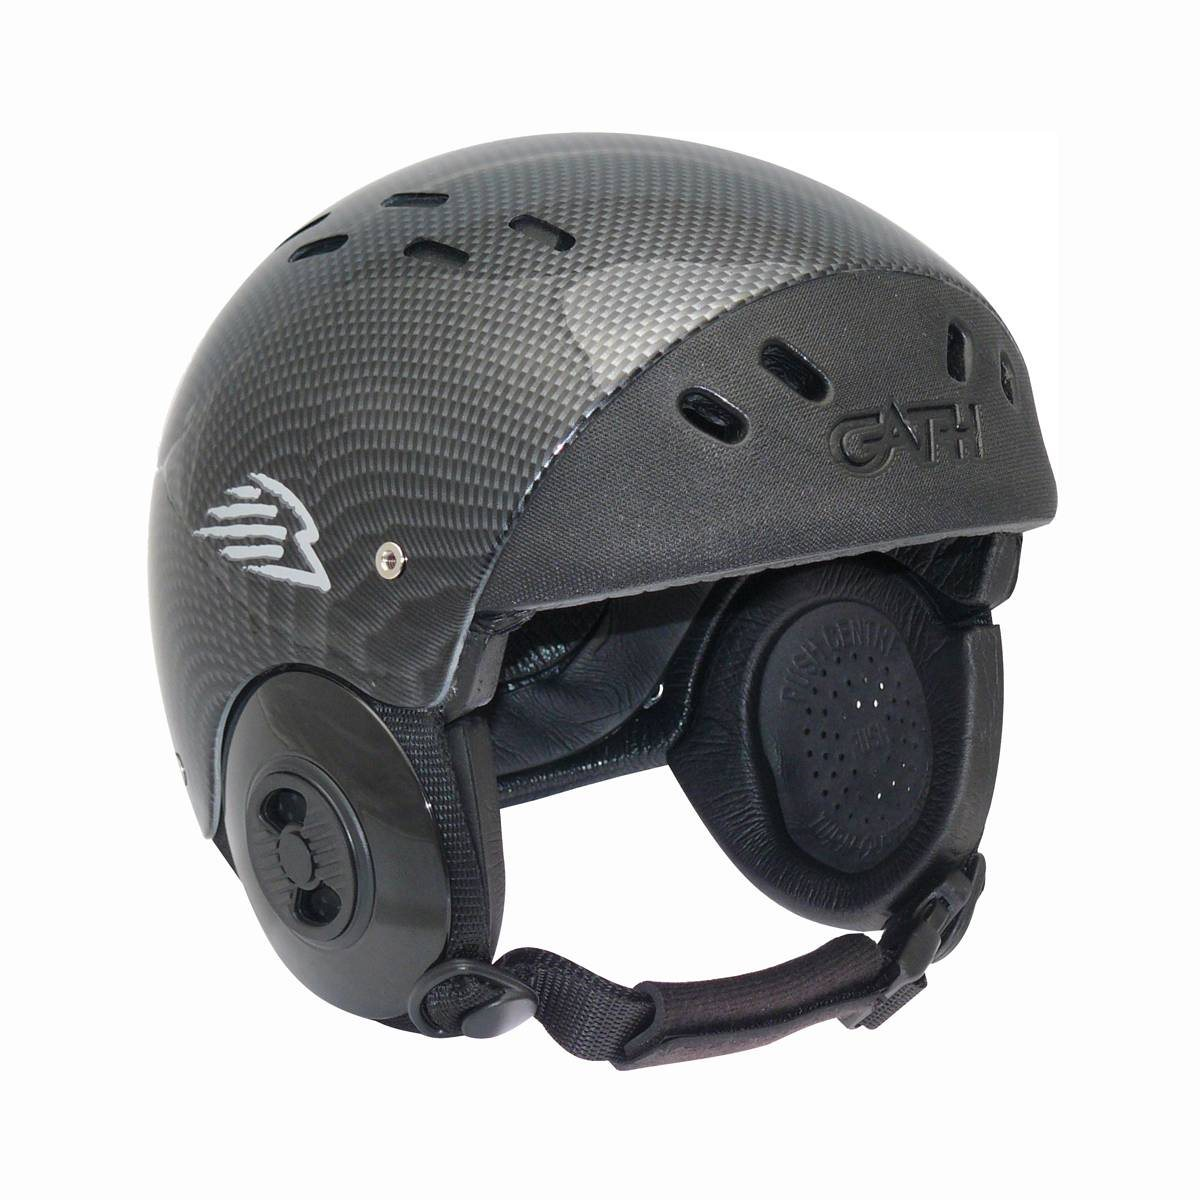 Gath SFC Surf Convertible Helm Carbon